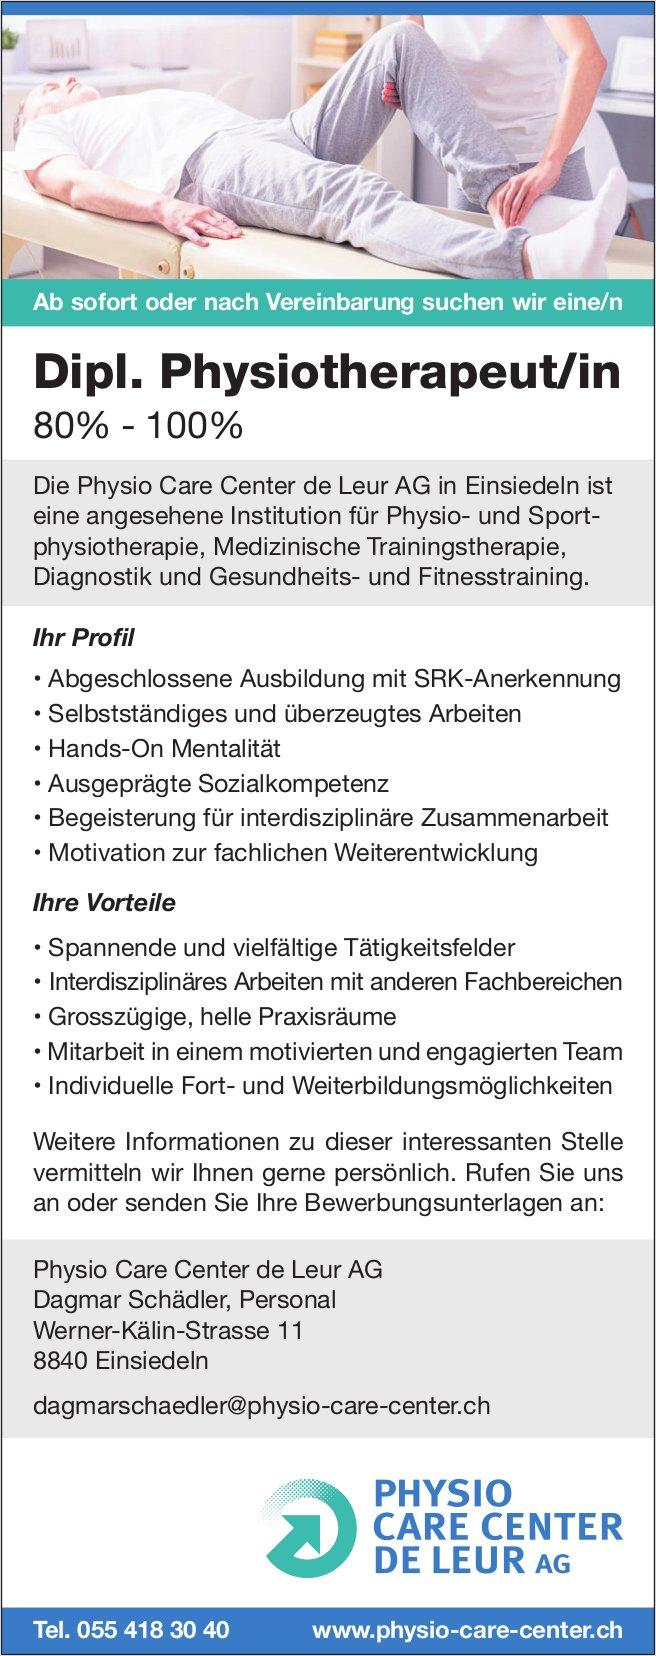 Dipl. Physiotherapeut/in, 80% - 100%, Physio Care Center de Leur AG